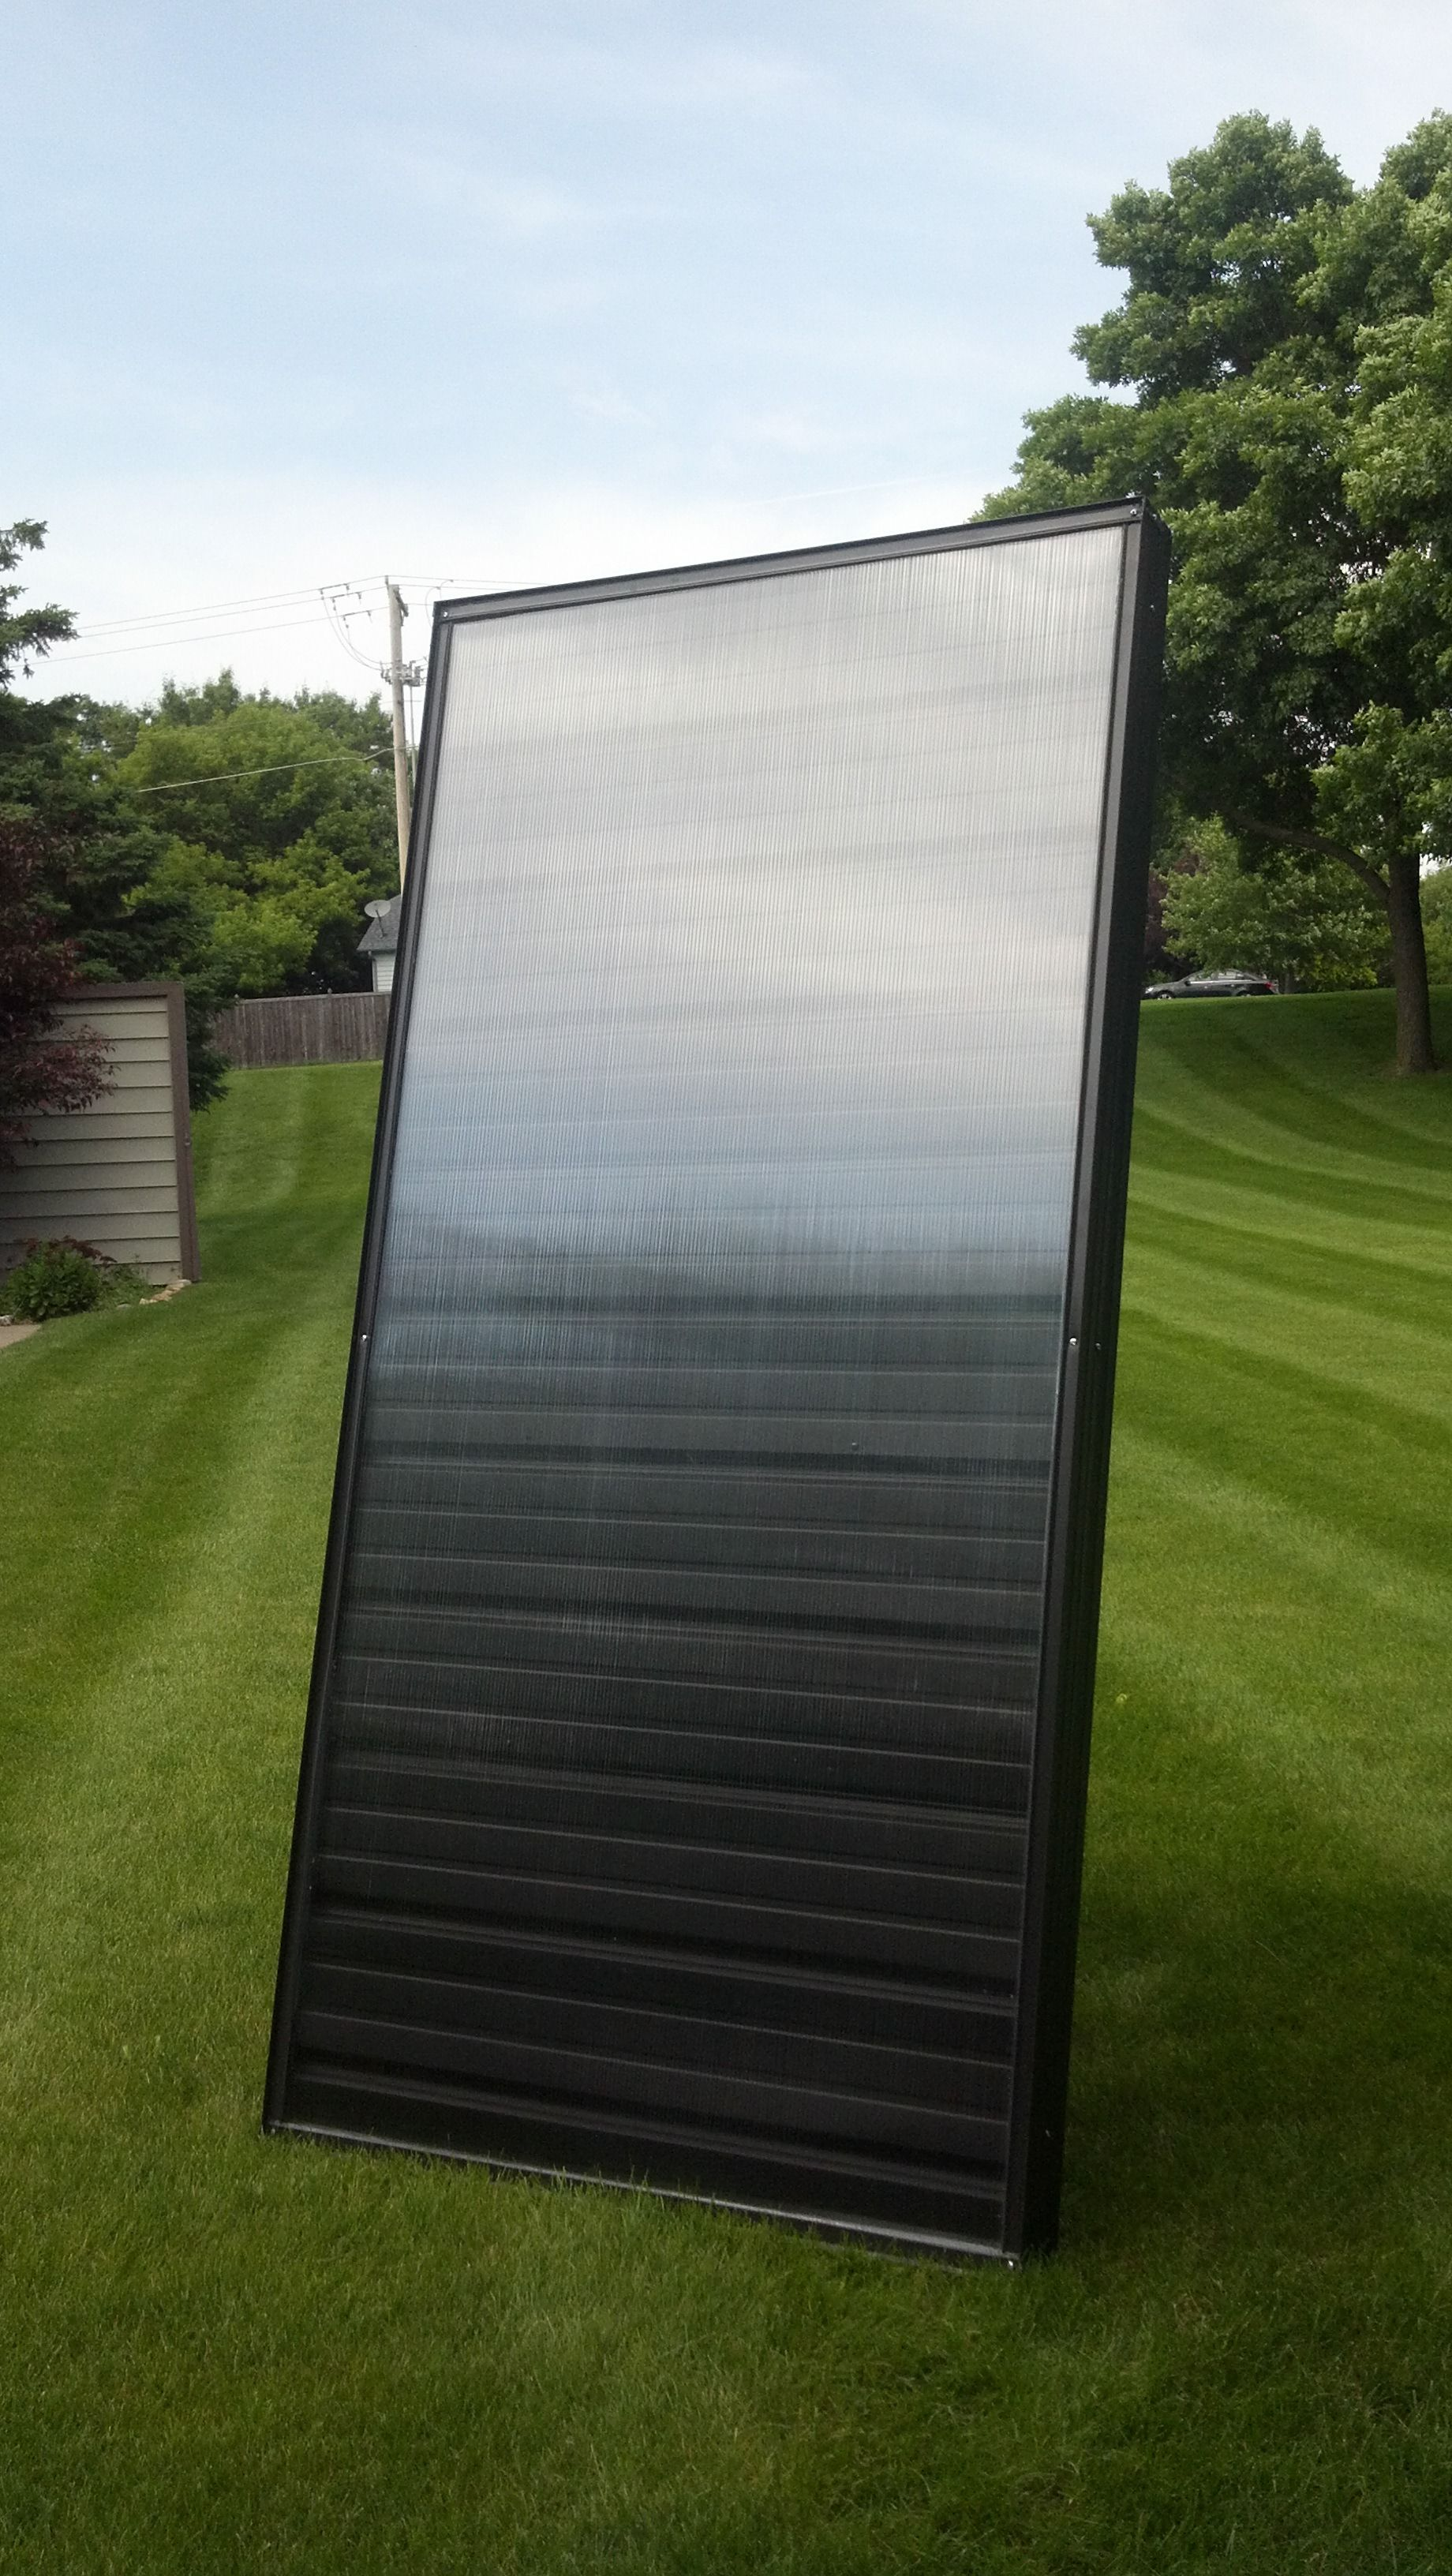 Diy Solar Panels Soda Cans Diy Solar Heater Manual Learn How To Build This Light